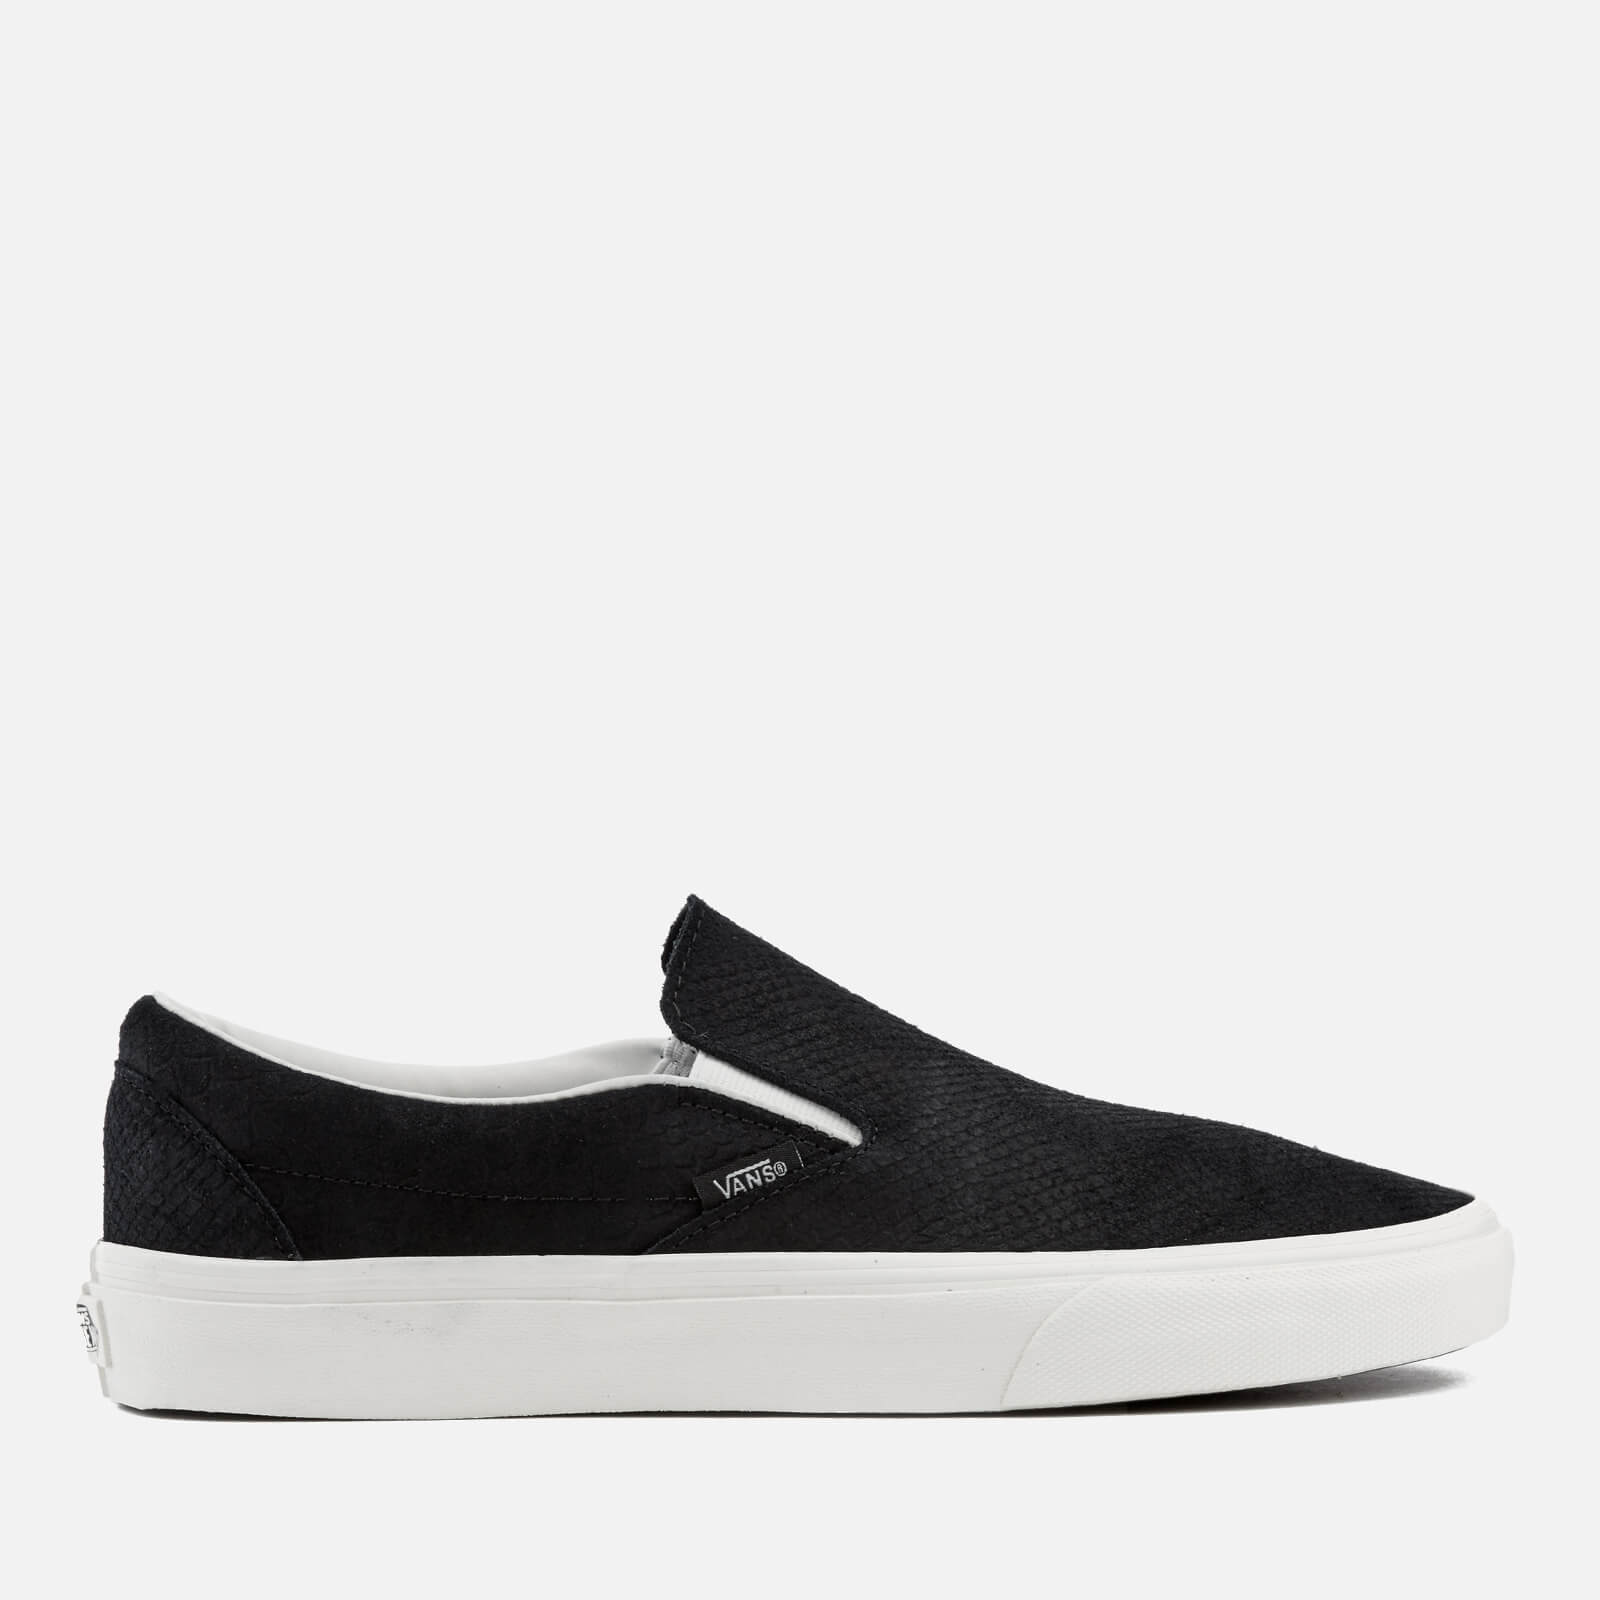 490ac0580e Vans Men s Classic Snake Slip-On Trainers - Black Blanc - Free UK Delivery  over £50